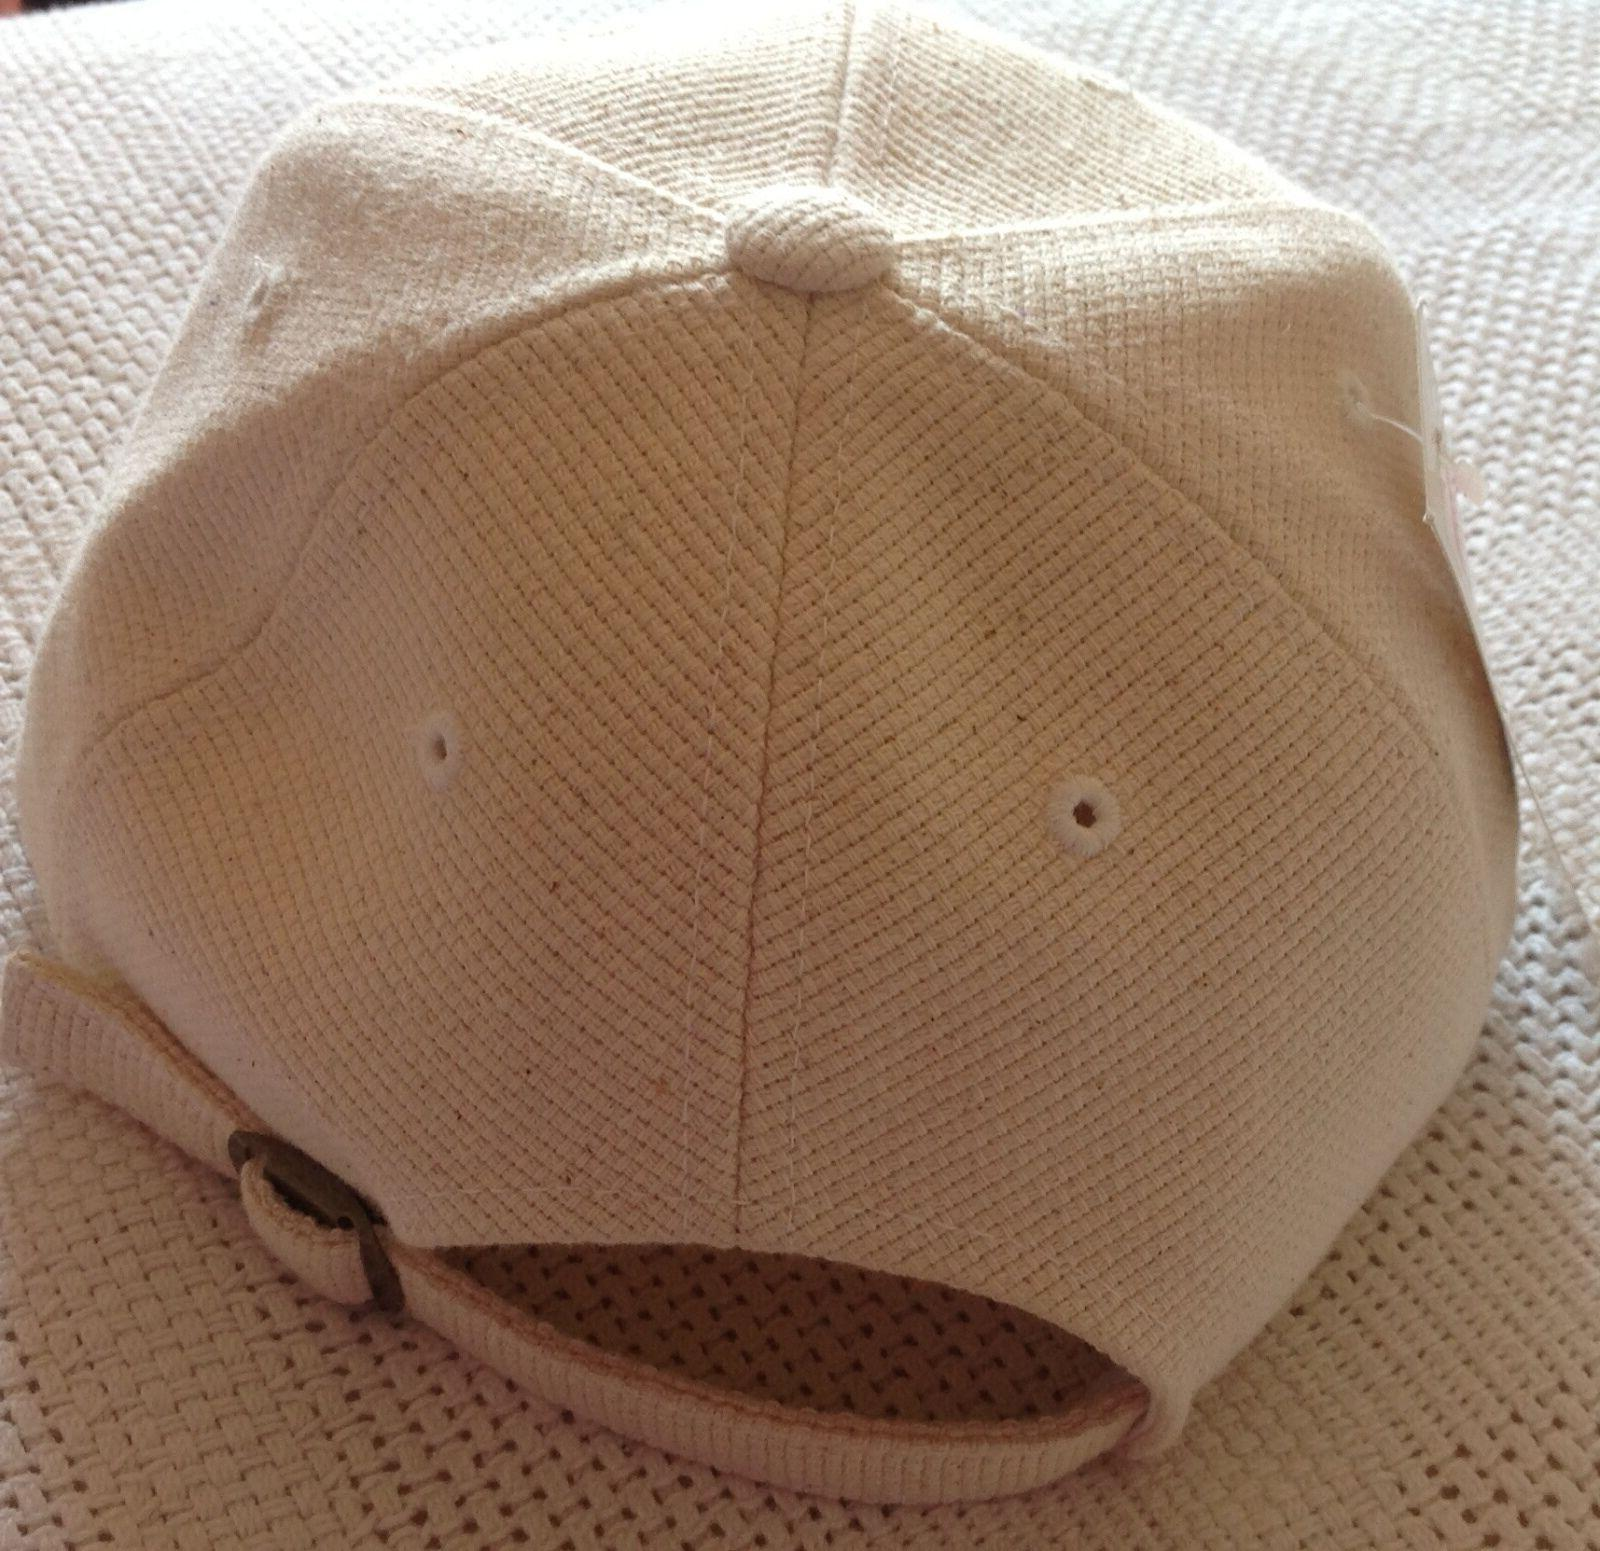 NWT, NHL Colorado cap, stretch hat, cream/brown,embroidered